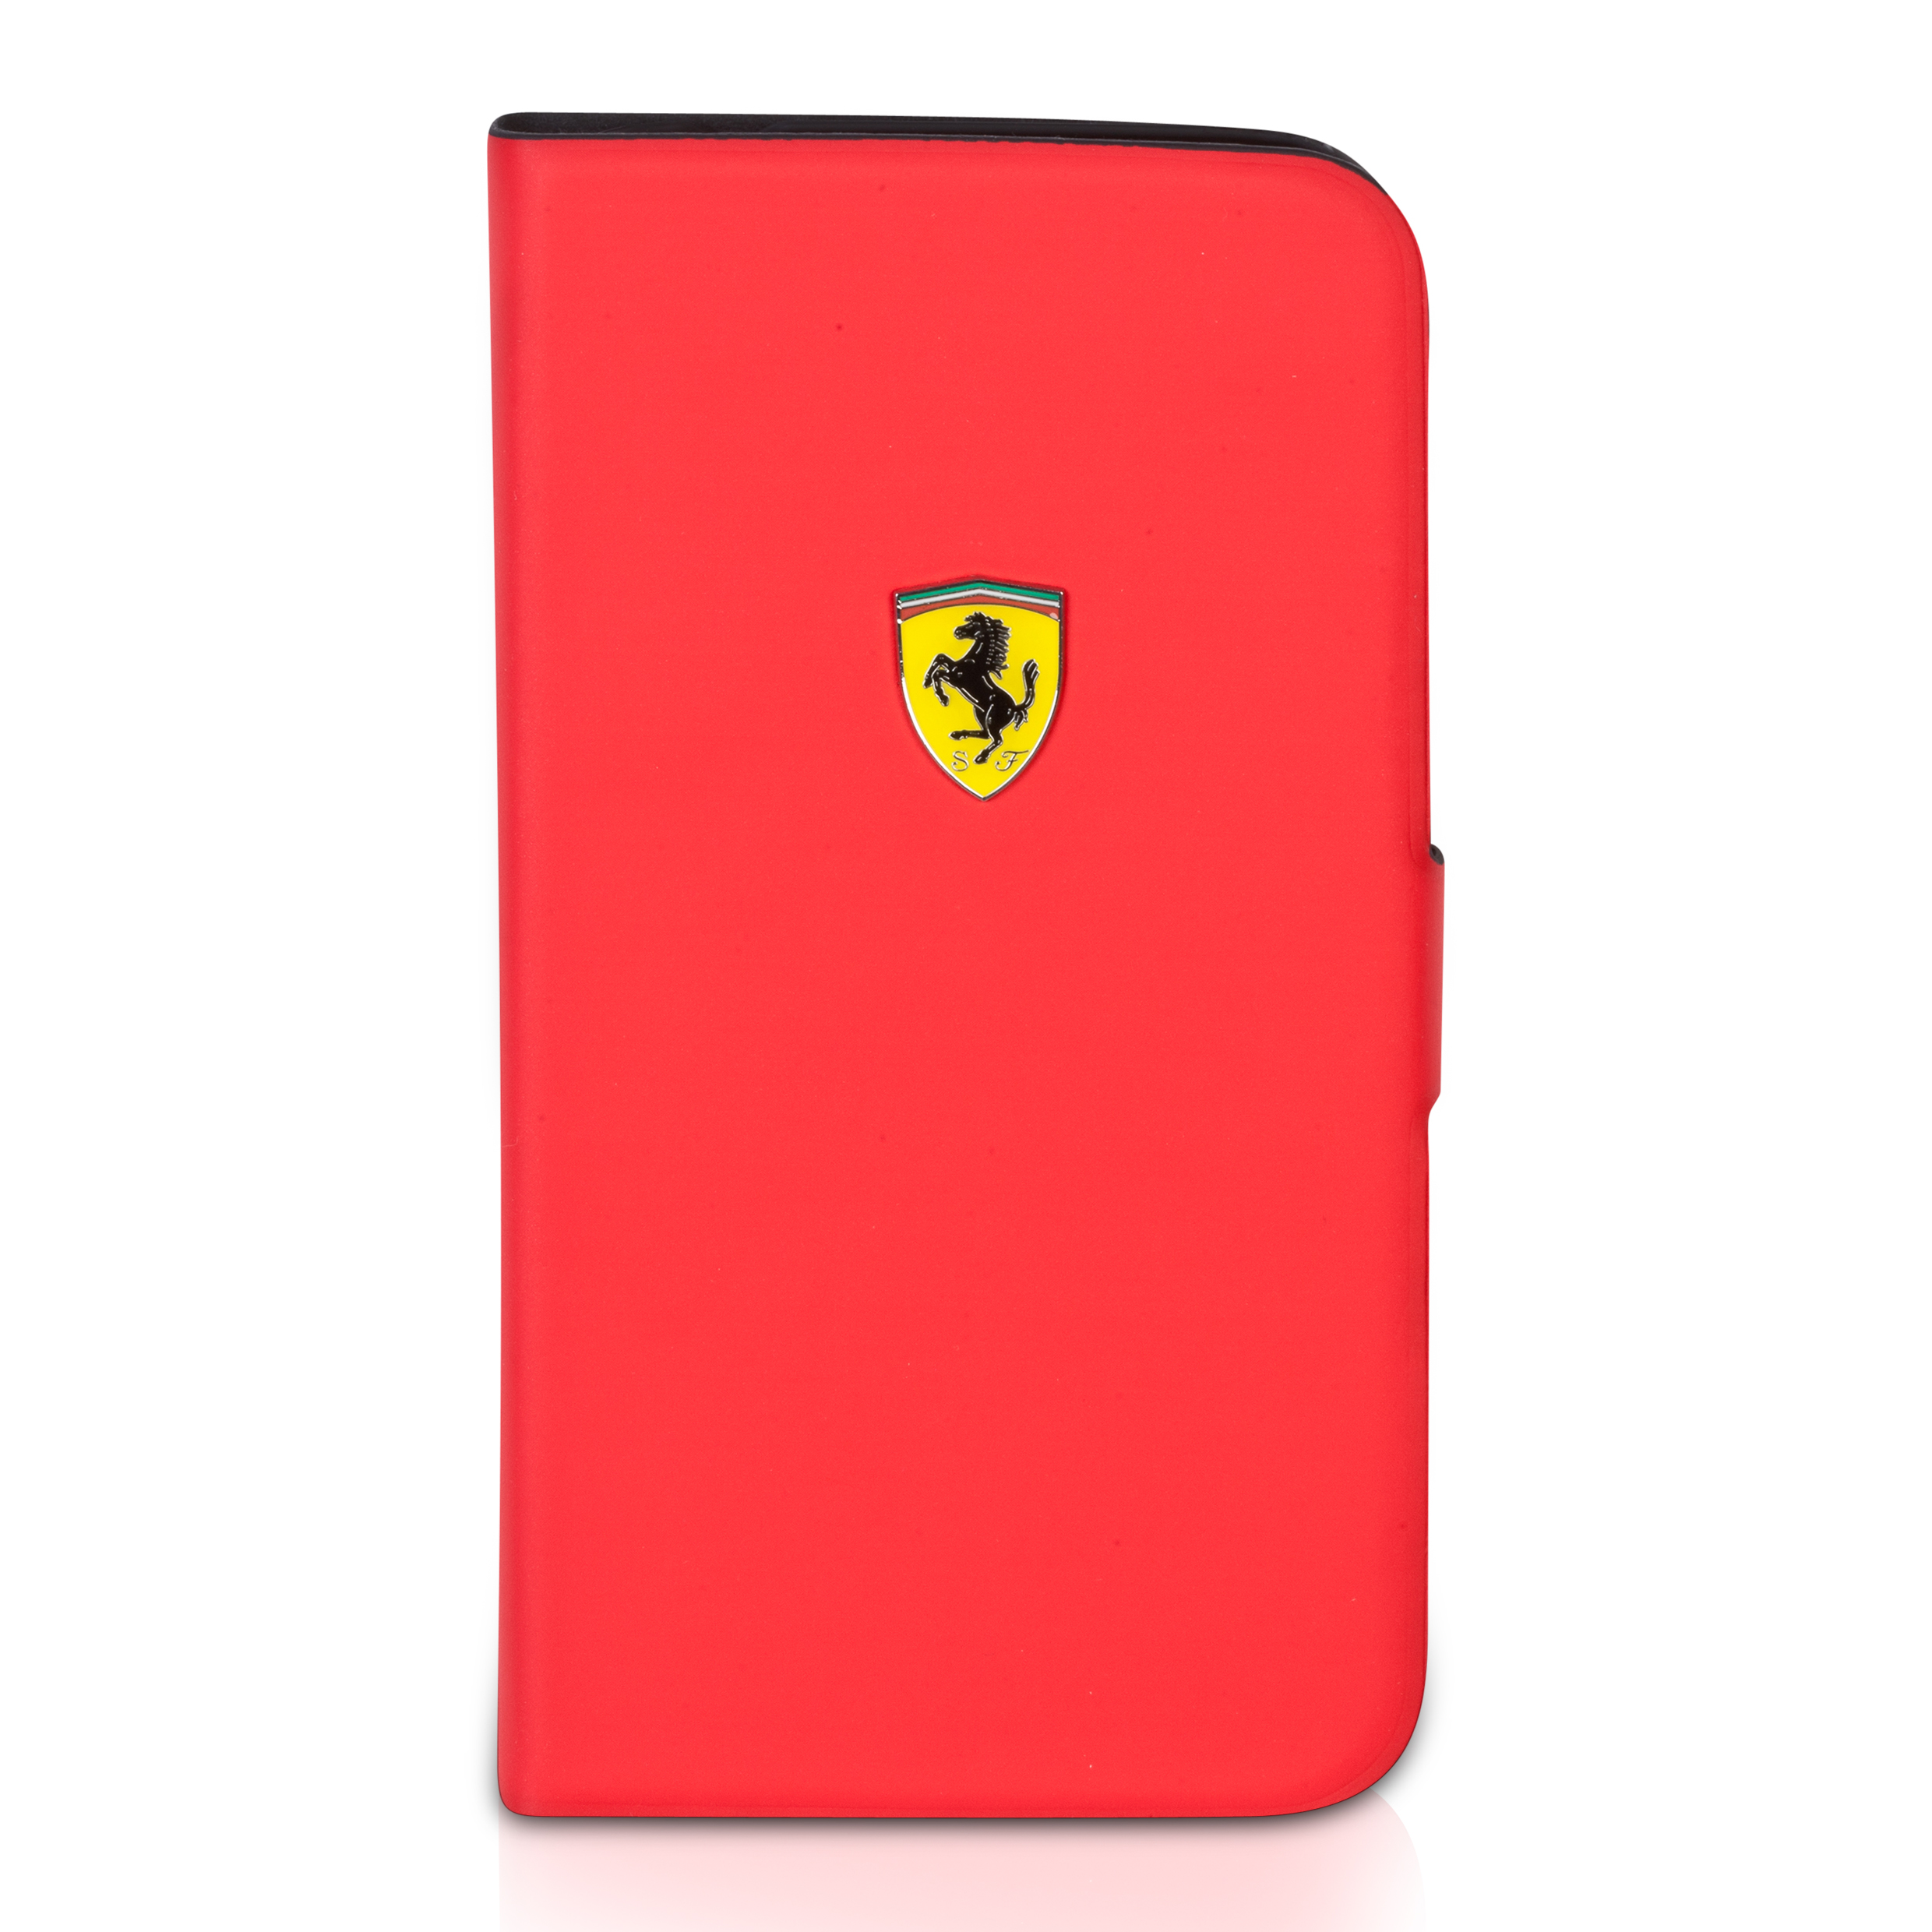 Scuderia Ferrari Galaxy S4 Rubber Hardcase With Flap - Red Red